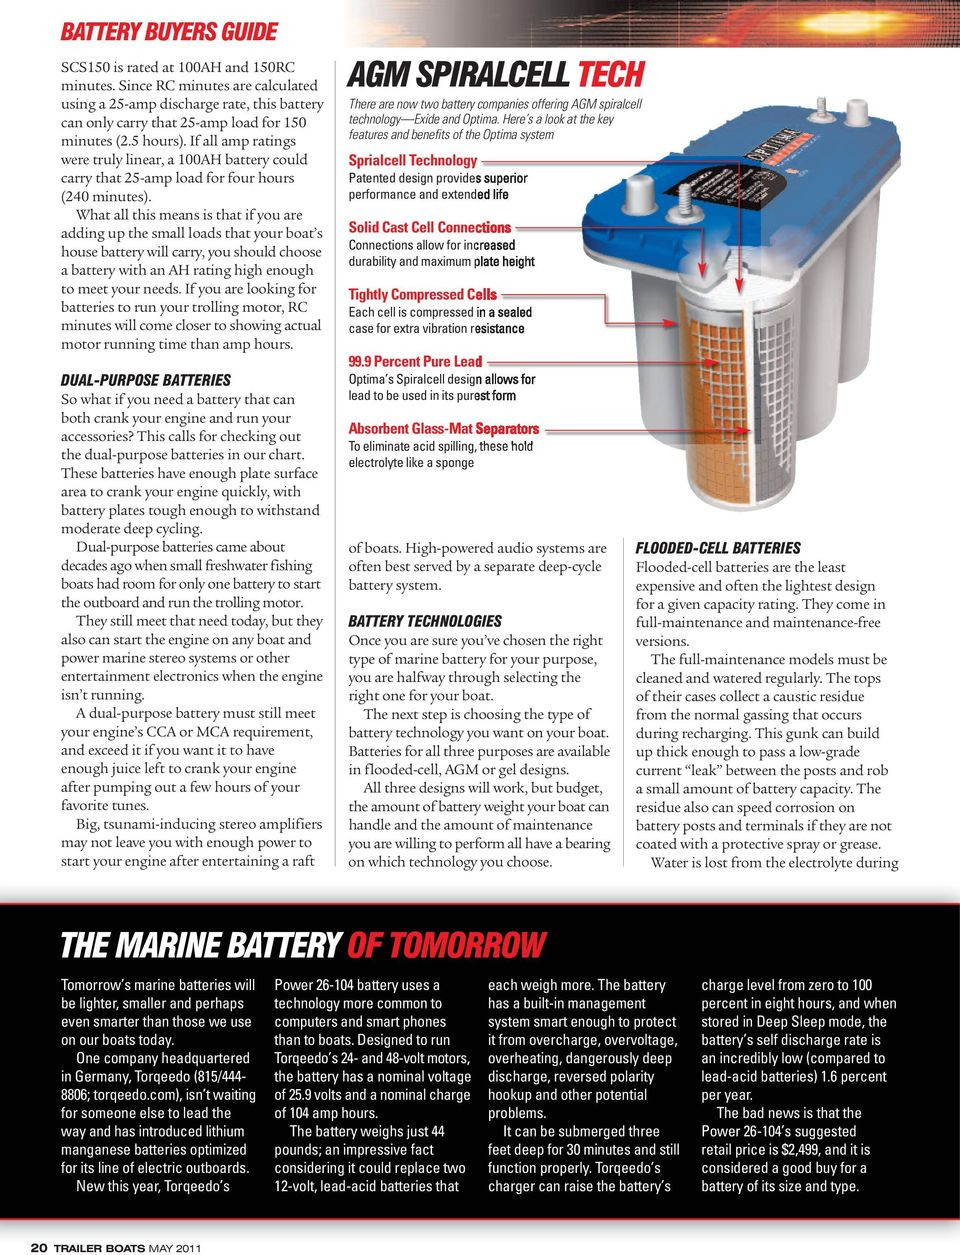 Marine 12 Volt Batteries Having The Right Can Make A Big Dry Cell Battery Diagram And Car What All This Means Is That If You Are Adding Up Small Loads Your